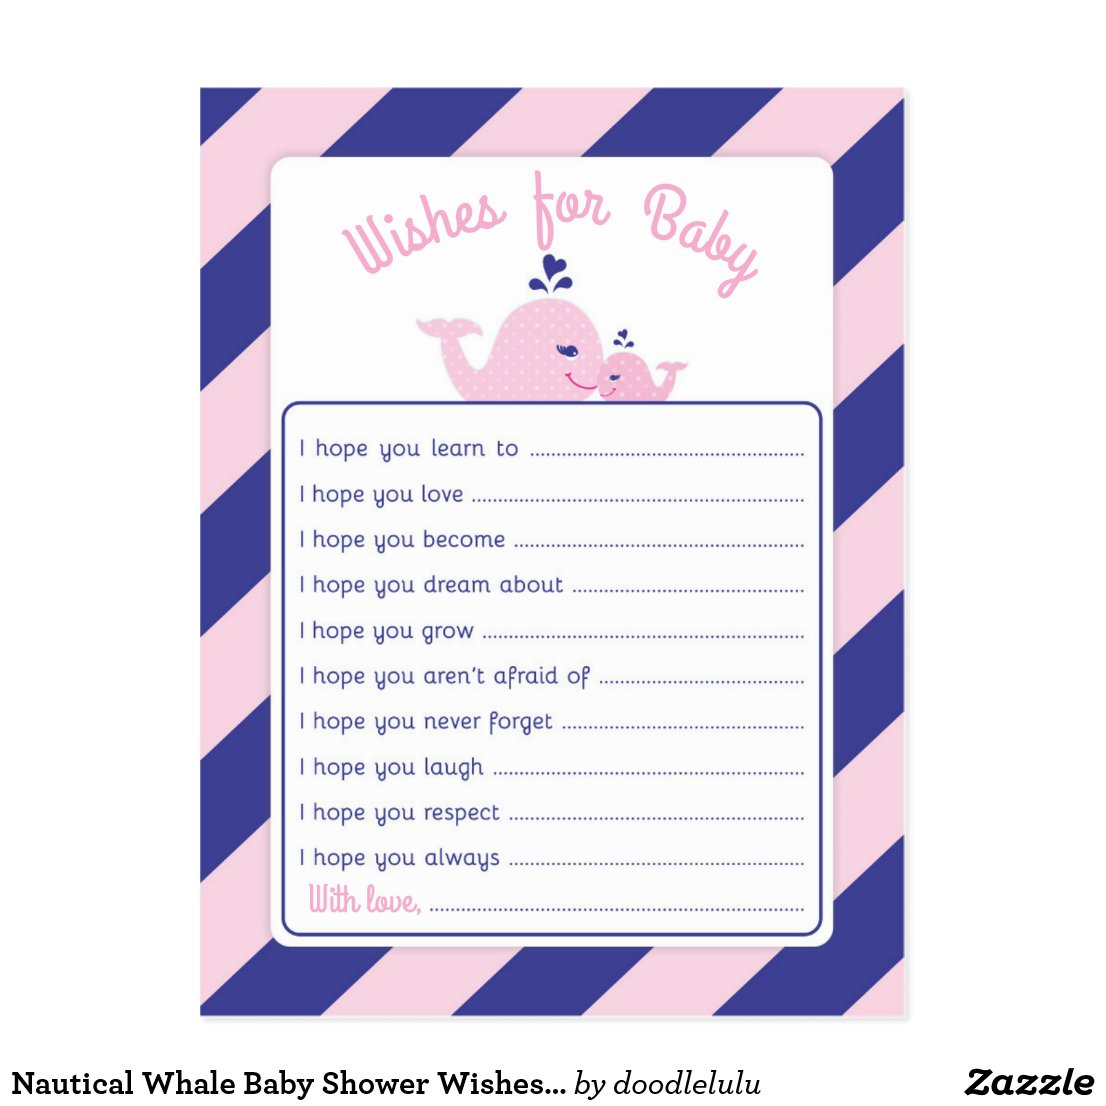 Nautical Whale Baby Shower Wishes for Baby Postcard